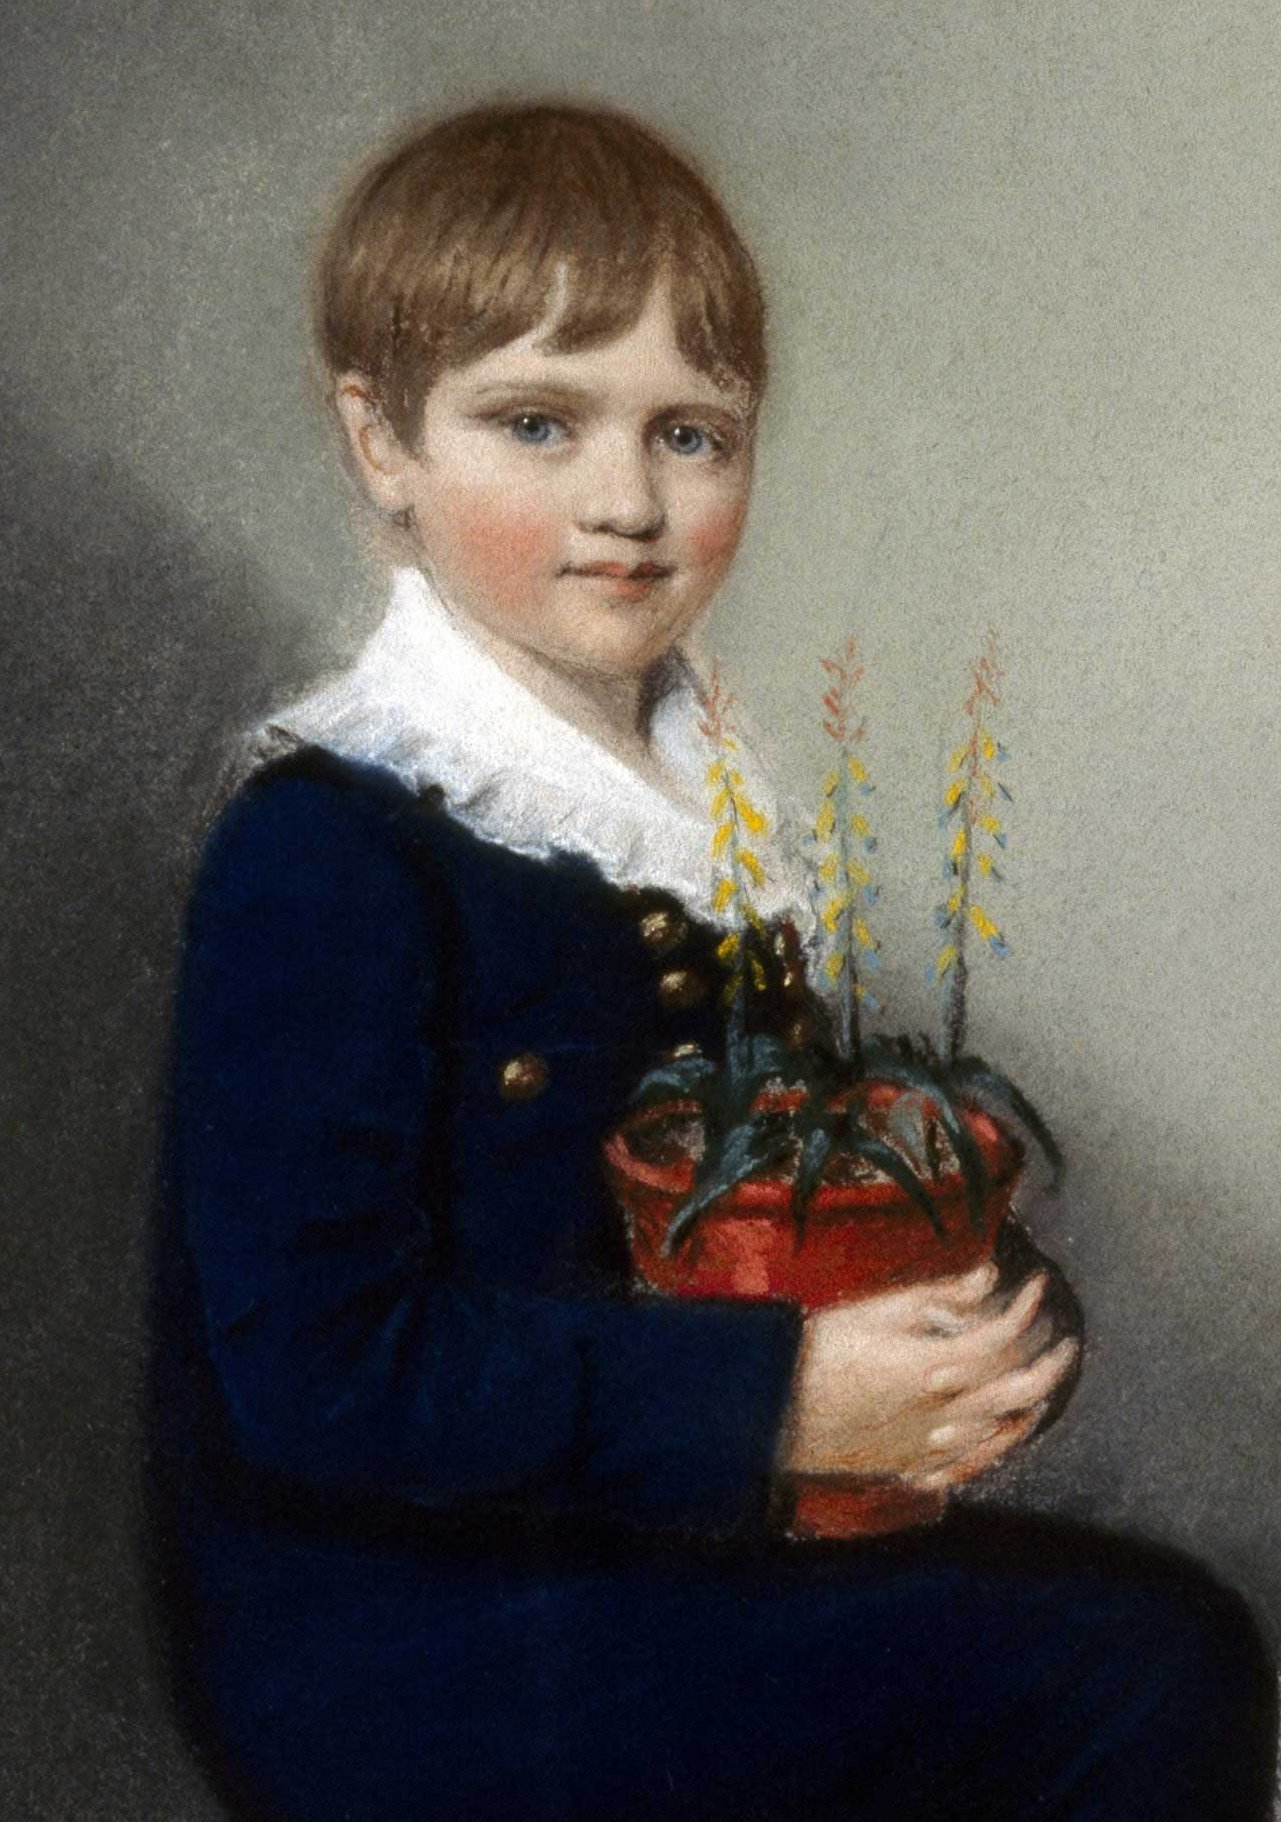 Charles Darwin (1809-1882) at age 7. The paint...